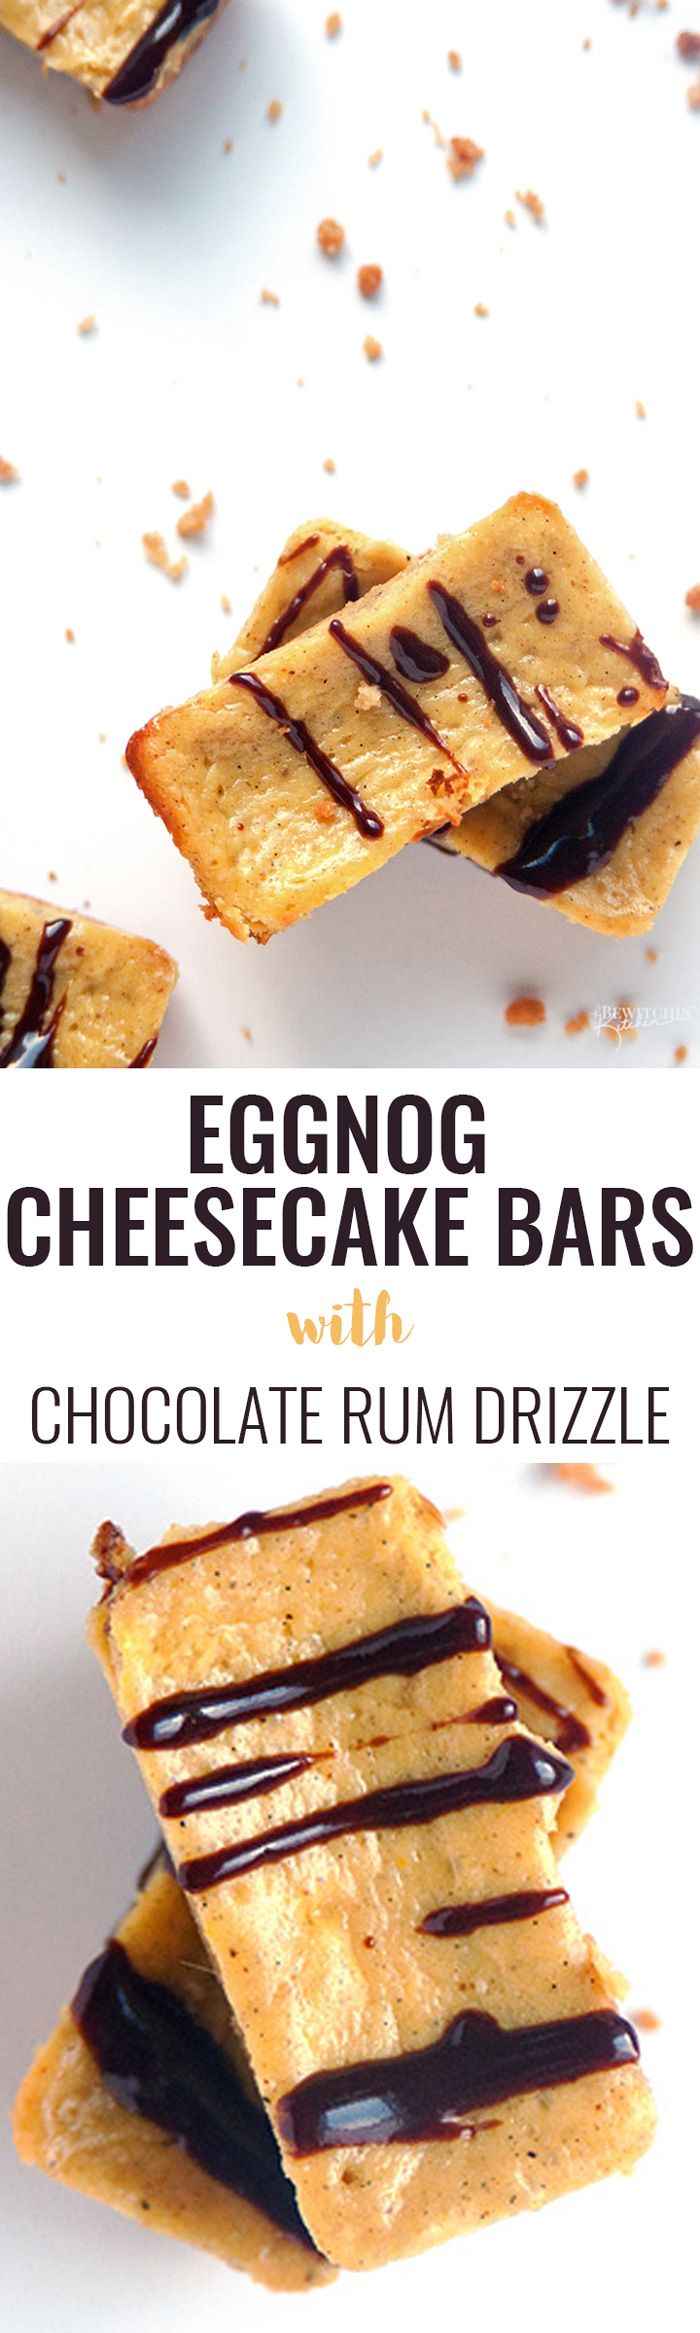 Eggnog Cheesecake Bars with a Chocolate Rum Drizzle - Oh my gosh! This recipe is simple and easy to make and is an Epicure favorite of mine. Perfect for Christmas parties| thebewitchinkitchen.com via @RandaDerkson